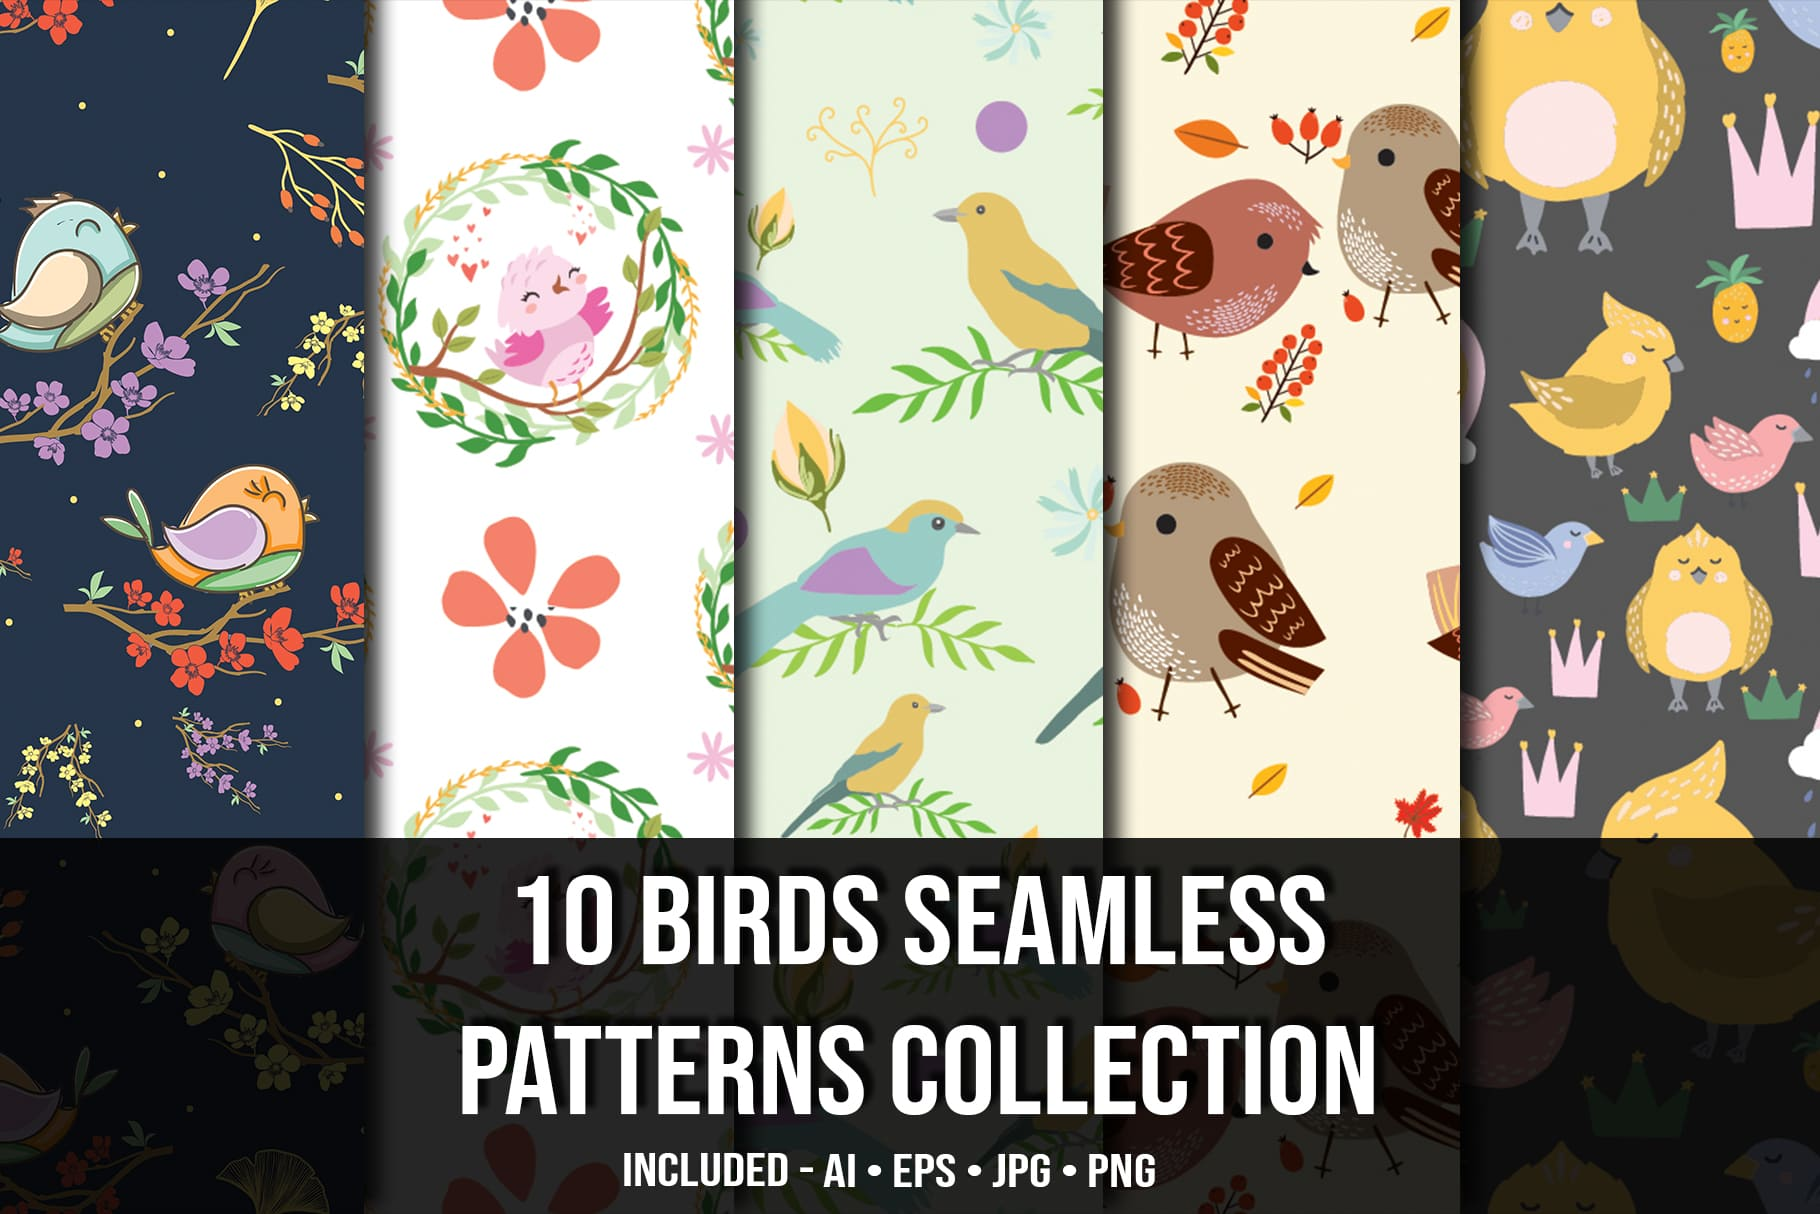 Main image.Birds Seamless Patterns Collection.